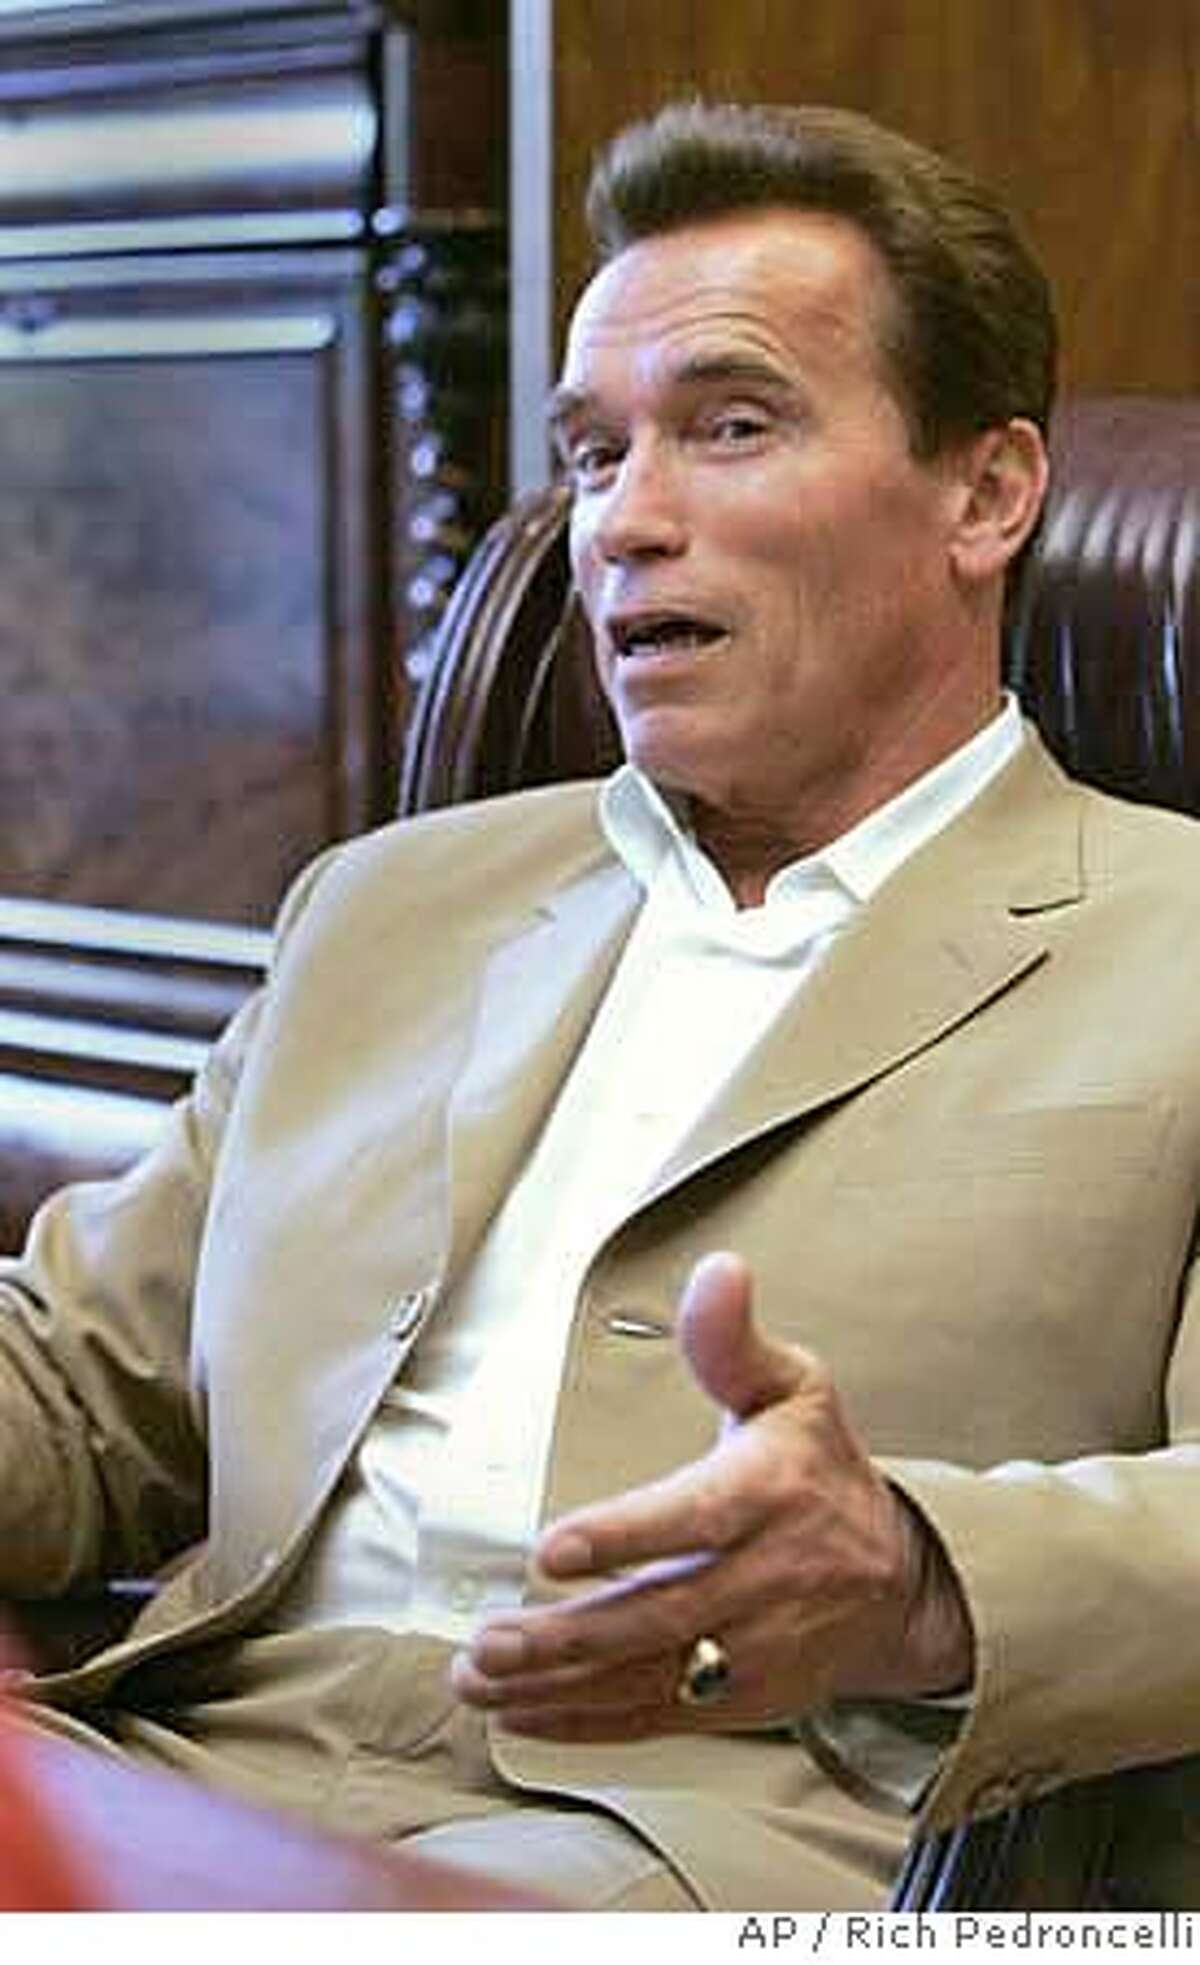 ###Live Caption:Gov. Arnold Schwarzenegger responds to a question during an interview with the Associated Press, in his Capitol office in Sacramento, Calif., Tuesday, April 29, 2008.(AP Photo/Rich Pedroncelli)###Caption History:Gov. Arnold Schwarzenegger responds to a question during an interview with the Associated Press, in his Capitol office in Sacramento, Calif., Tuesday, April 29, 2008.(AP Photo/Rich Pedroncelli)###Notes:###Special Instructions: